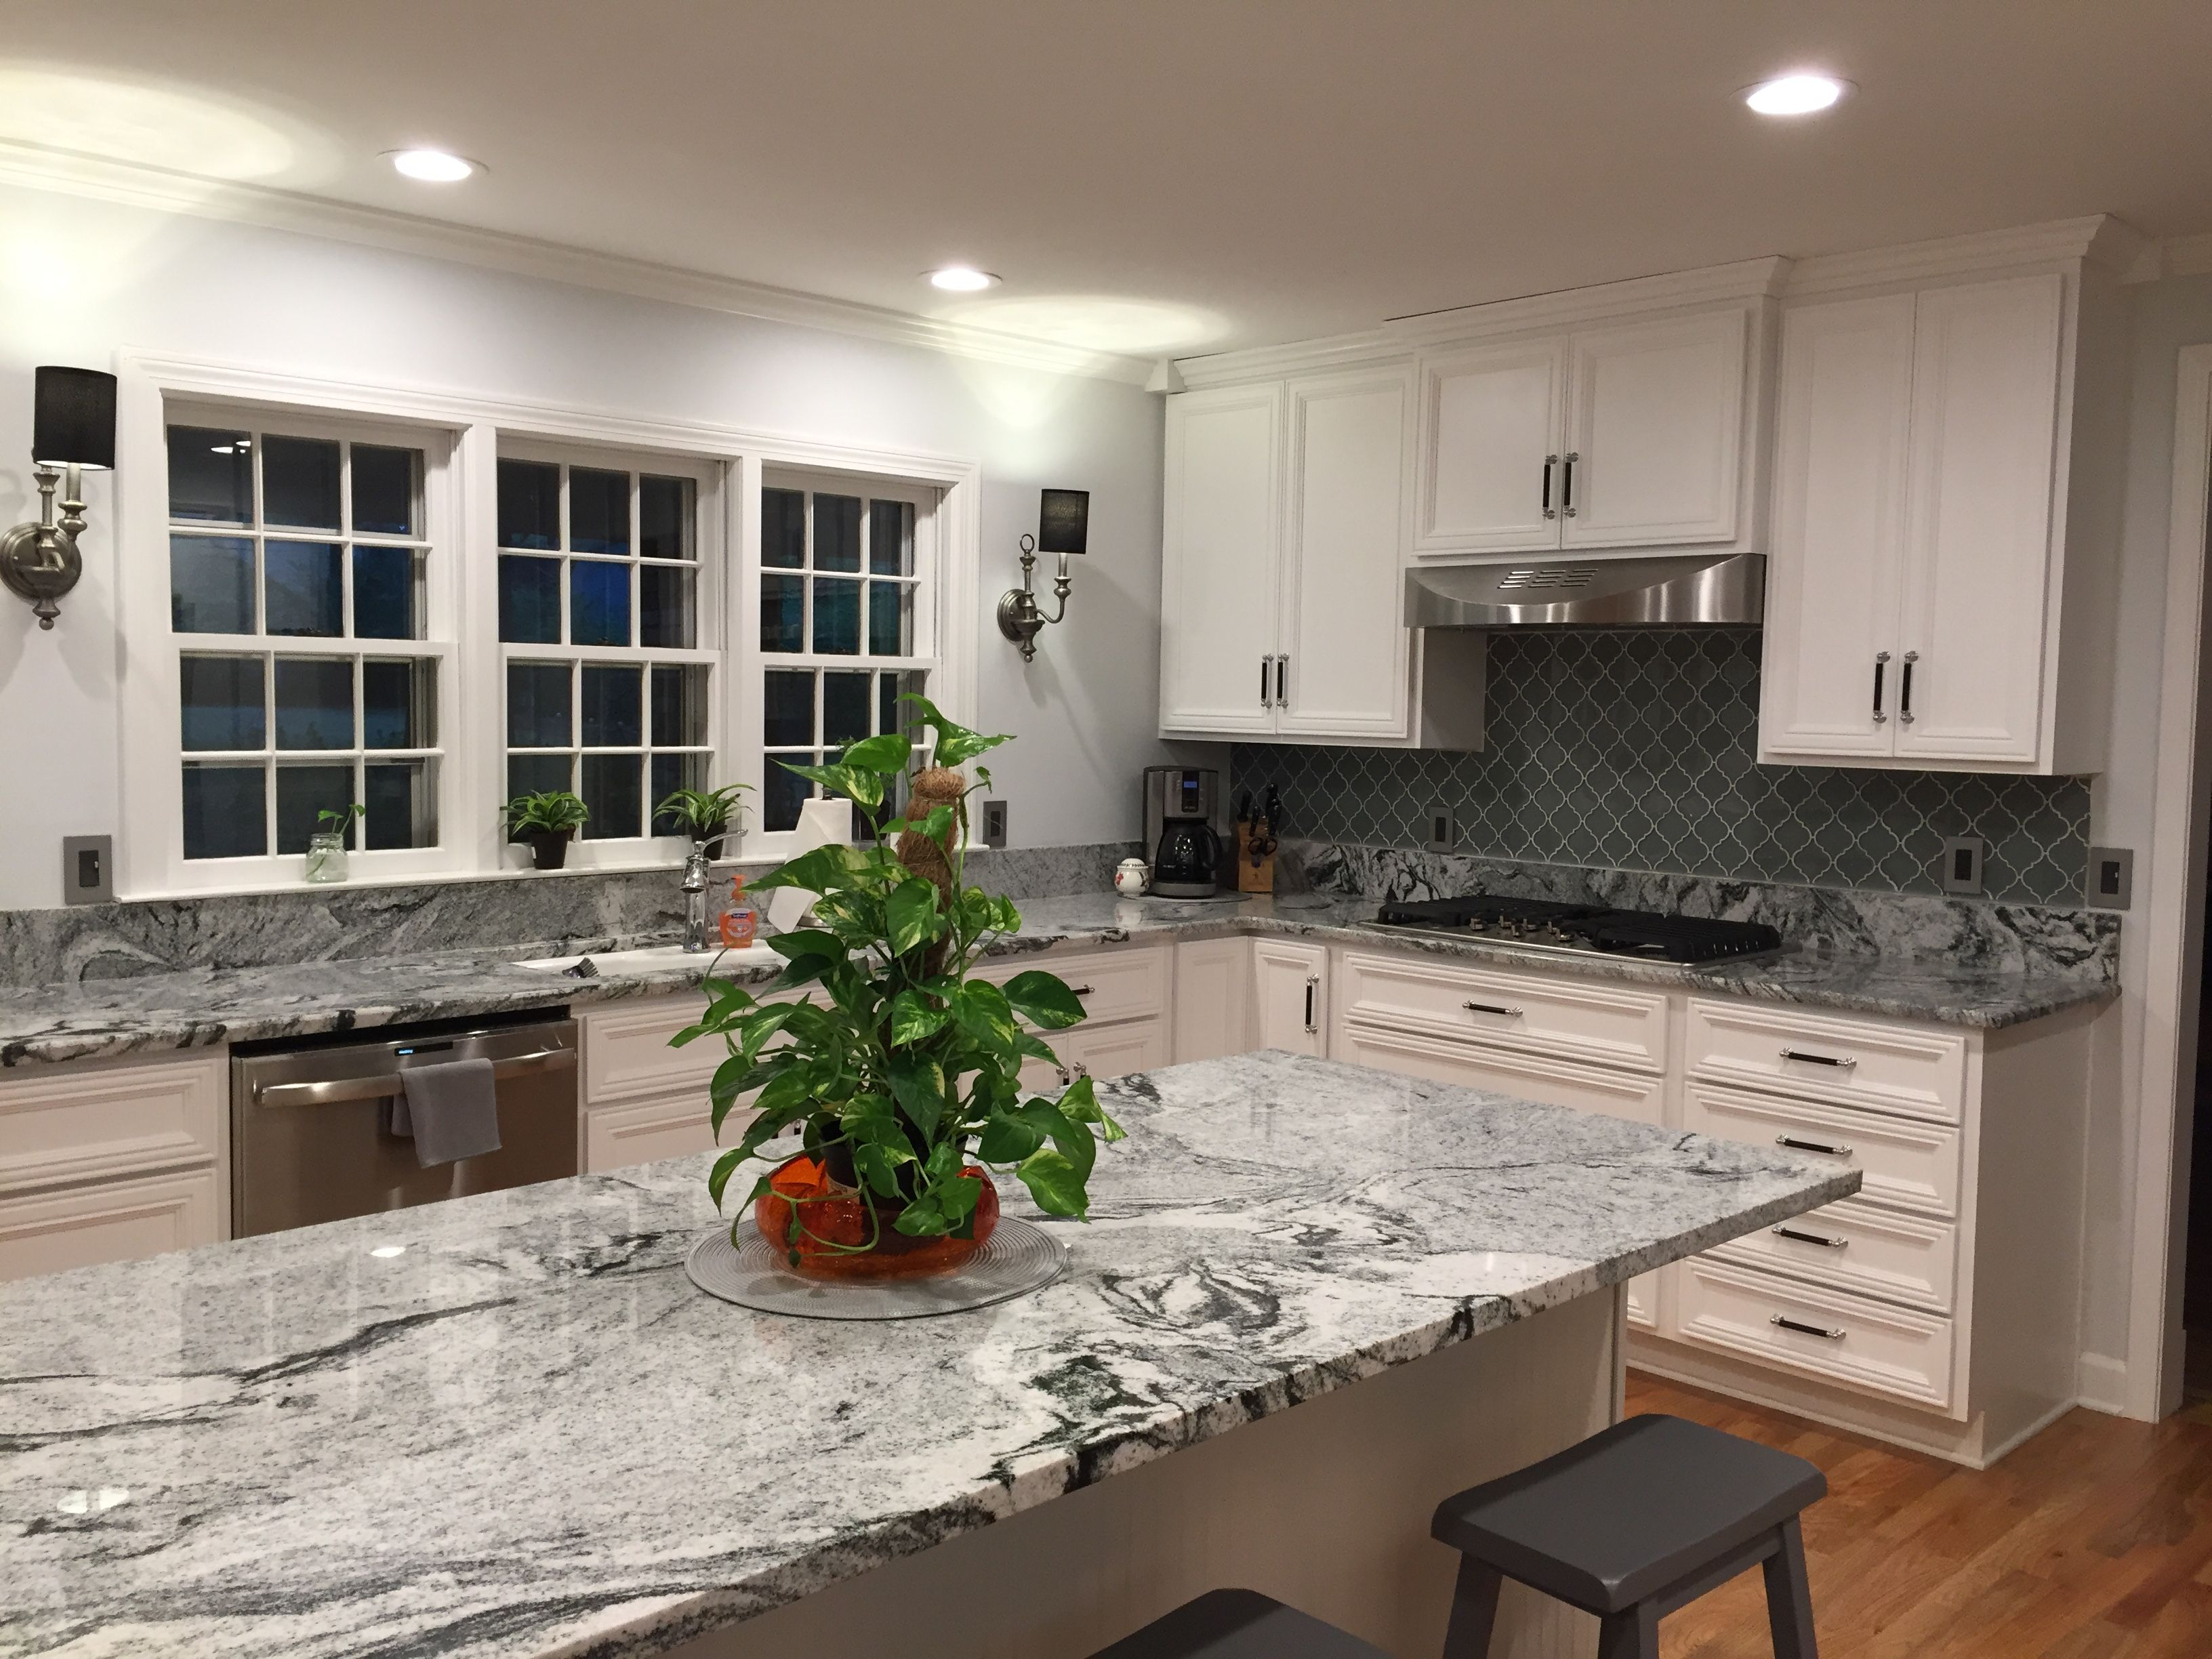 Best Granite Viscon White Backsplash Arabesque Glass Tile 400 x 300